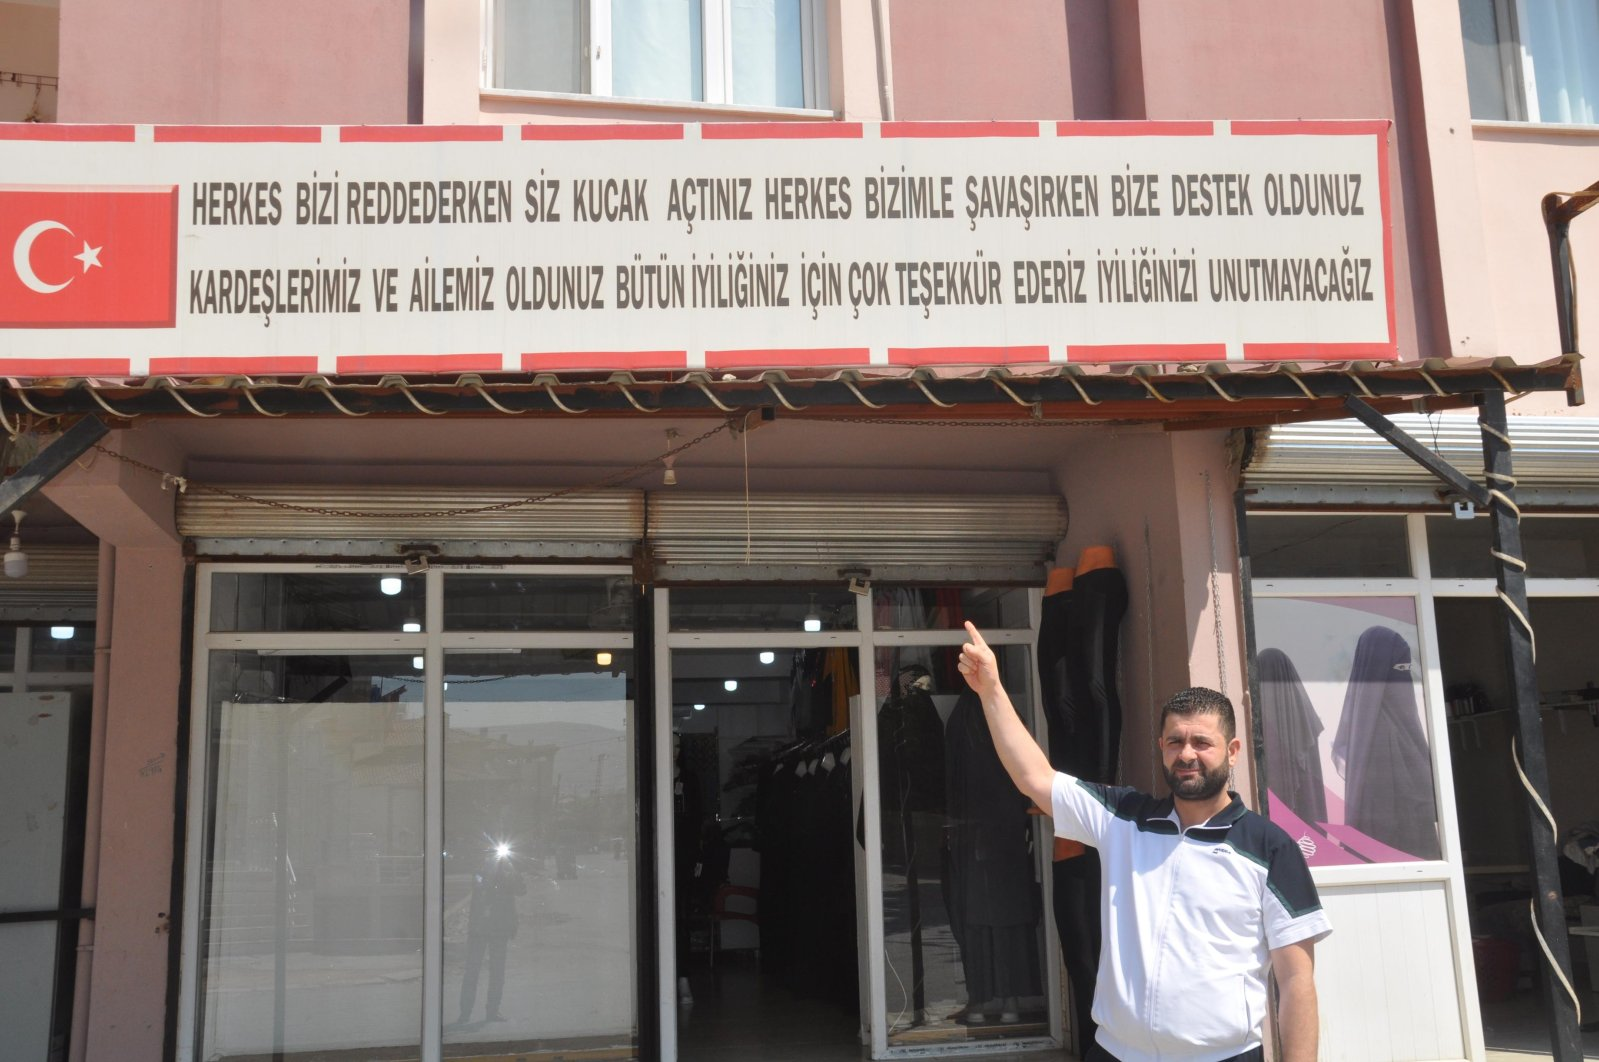 A refugee who settled in Turkey after fleeing the Syrian civil war hung a signboard of appreciation for the country embracing Syrians after the world turned their back on them, Hatay province, Turkey, Aug. 22, 2020 (DHA Photo)